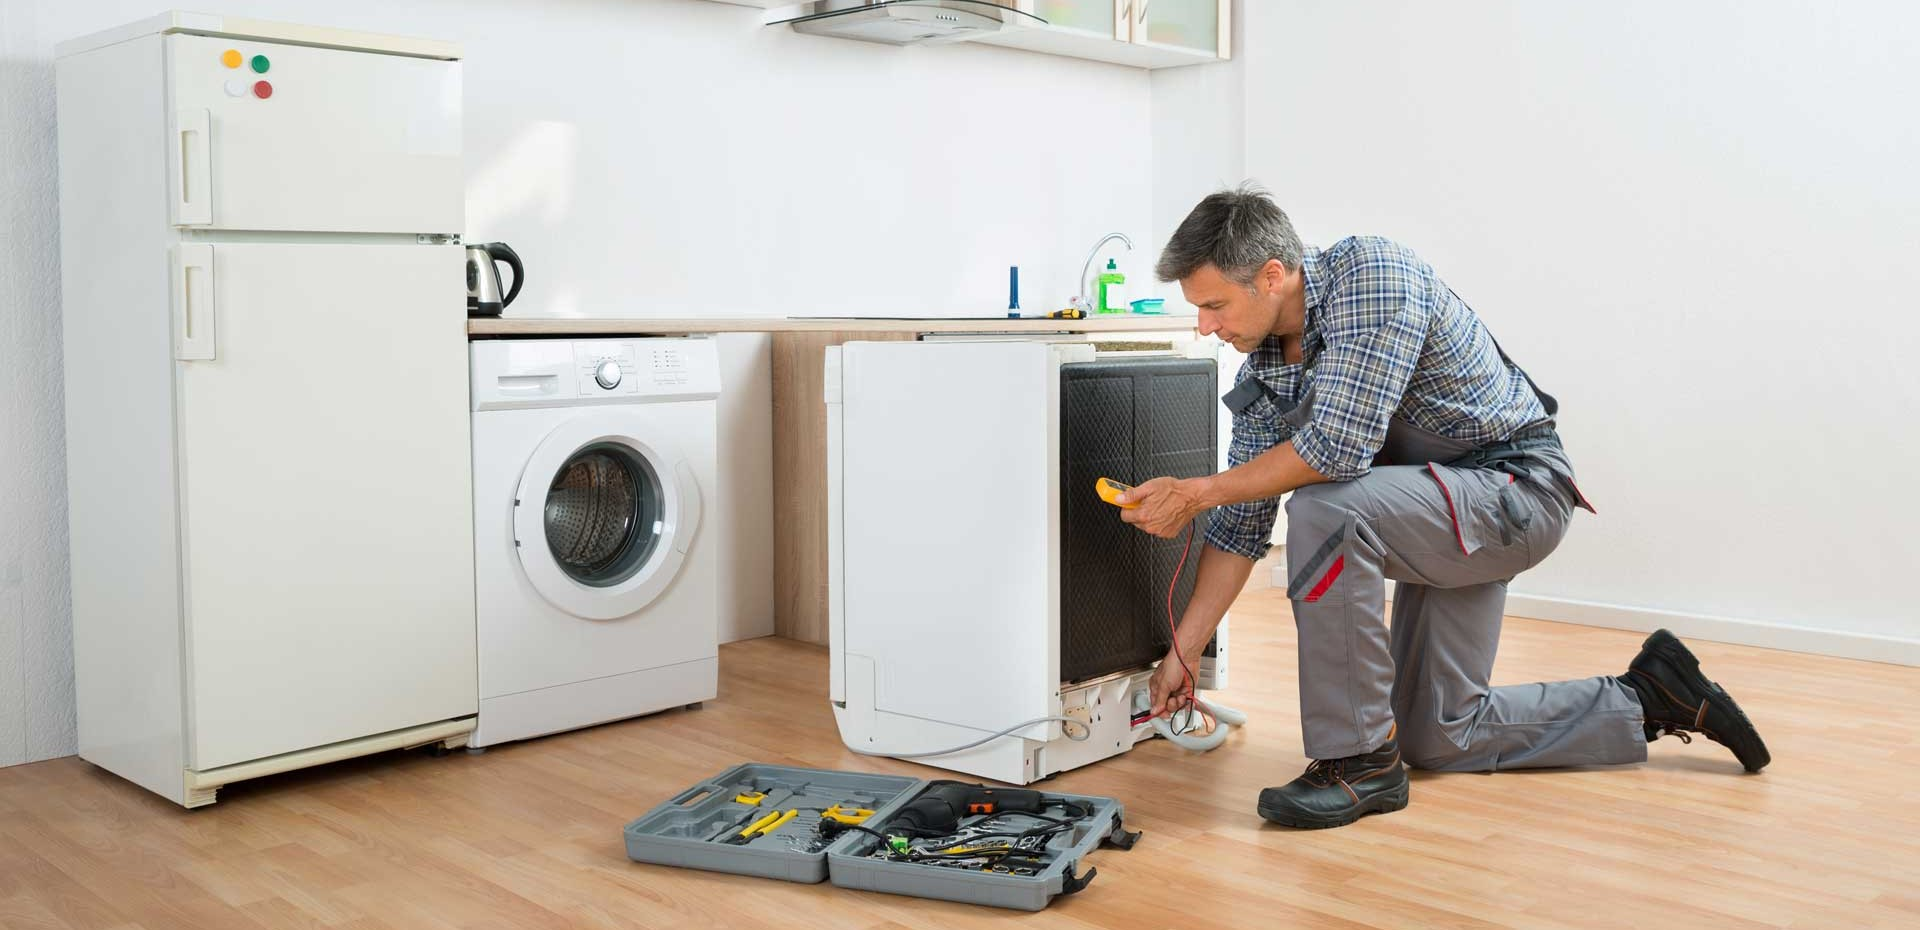 We offer best Appliance and HVAC Repair services